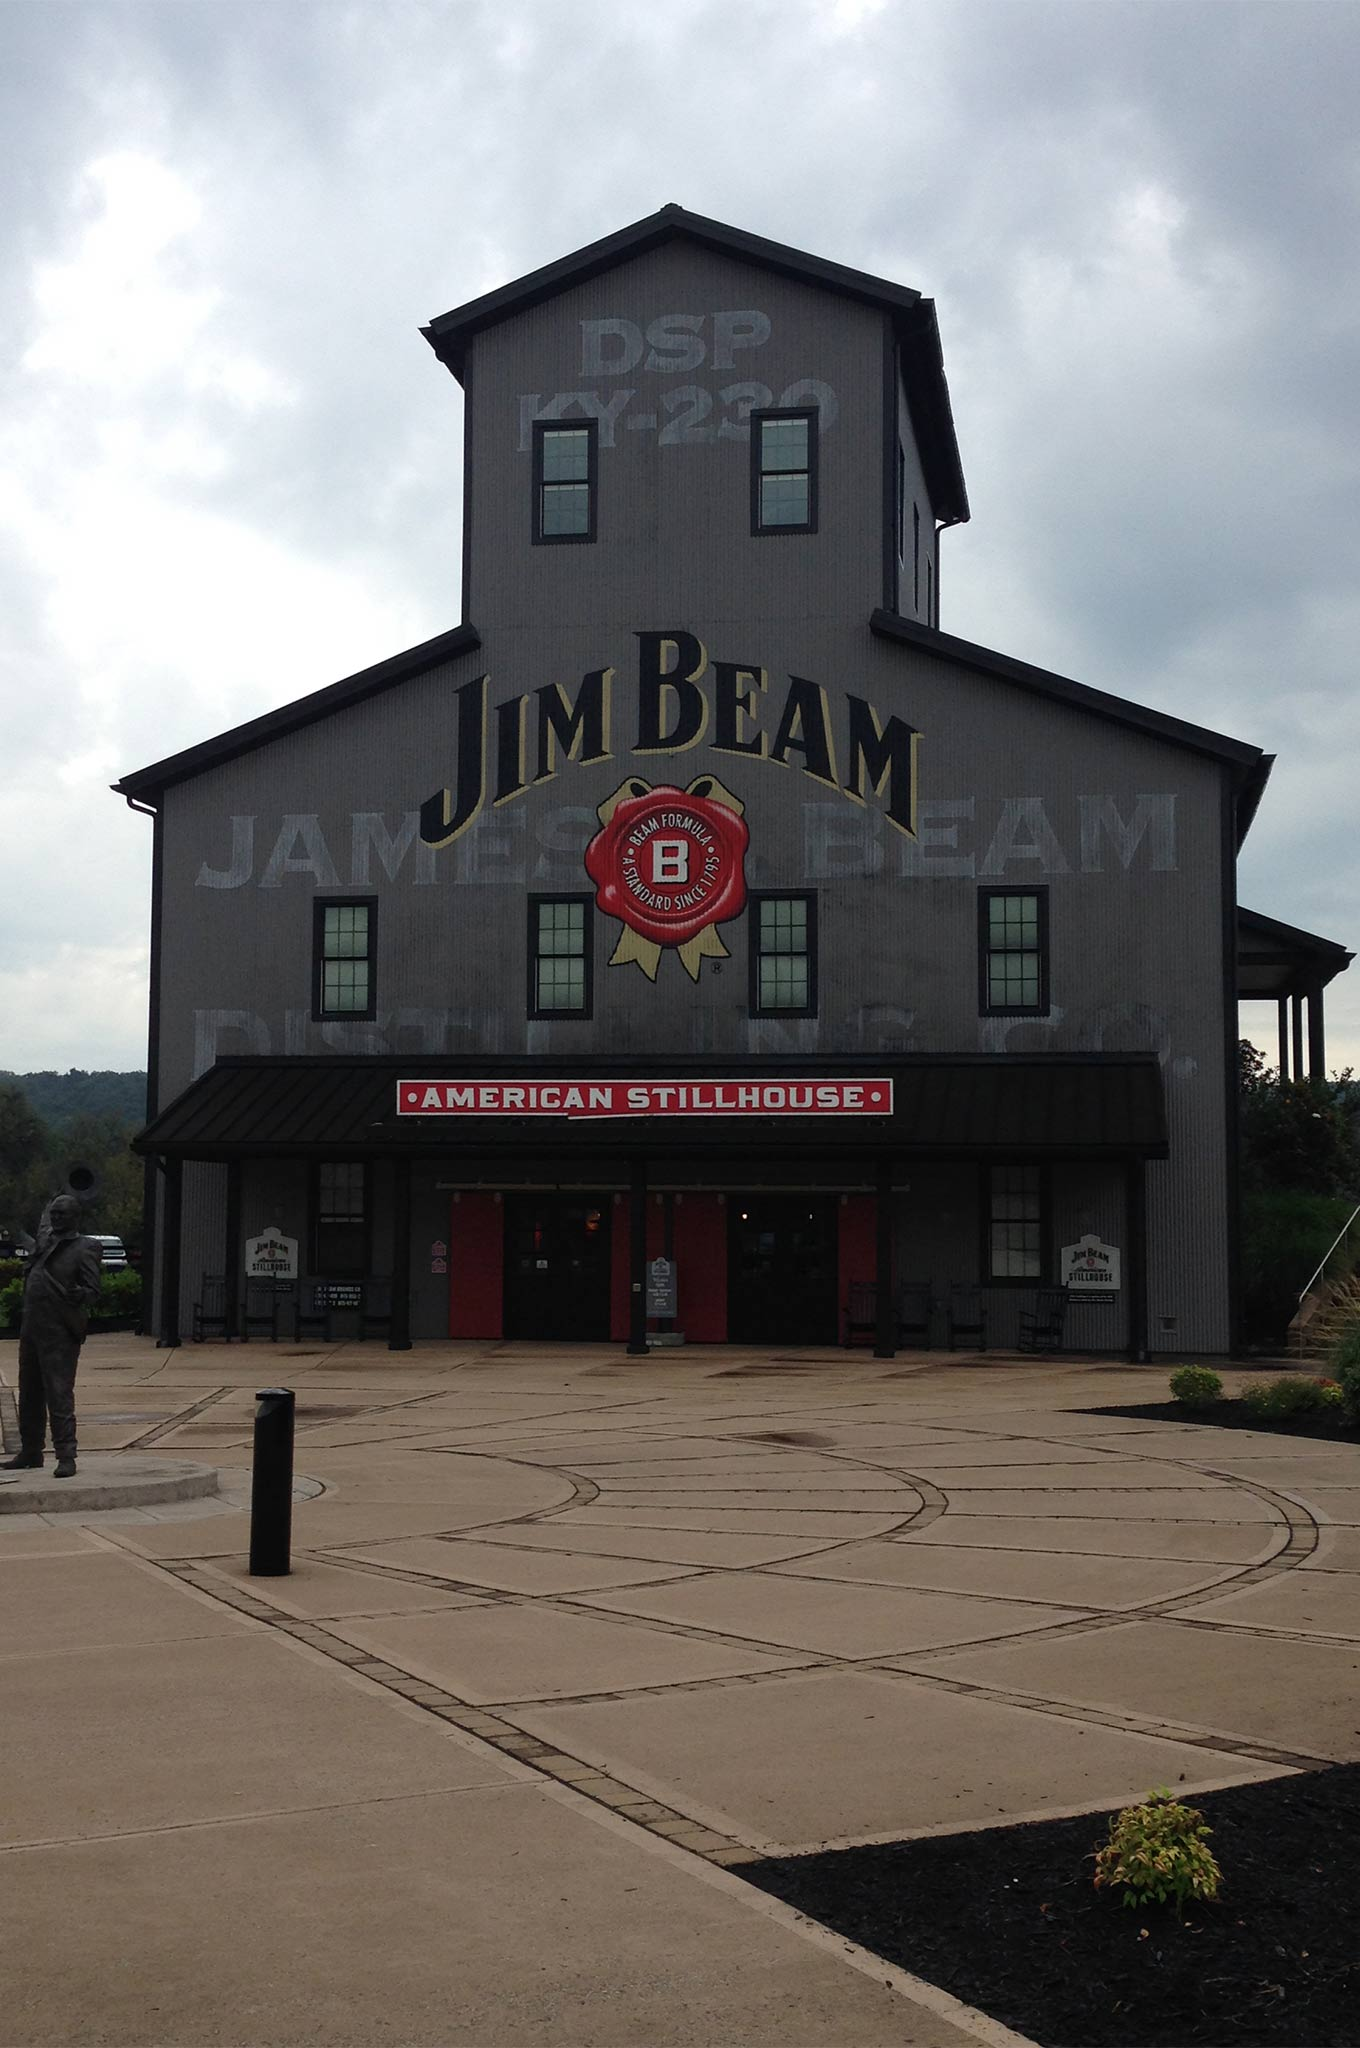 We spent Tuesday evening in Shepardsville, KY, just south of Louisville. Wednesday morning we stopped at the newly remodeled Jim Bean American Stillhouse visitor's center. We took a short tour of the warehouse and got a chance to buy some cool souvenirs for the folks back home.